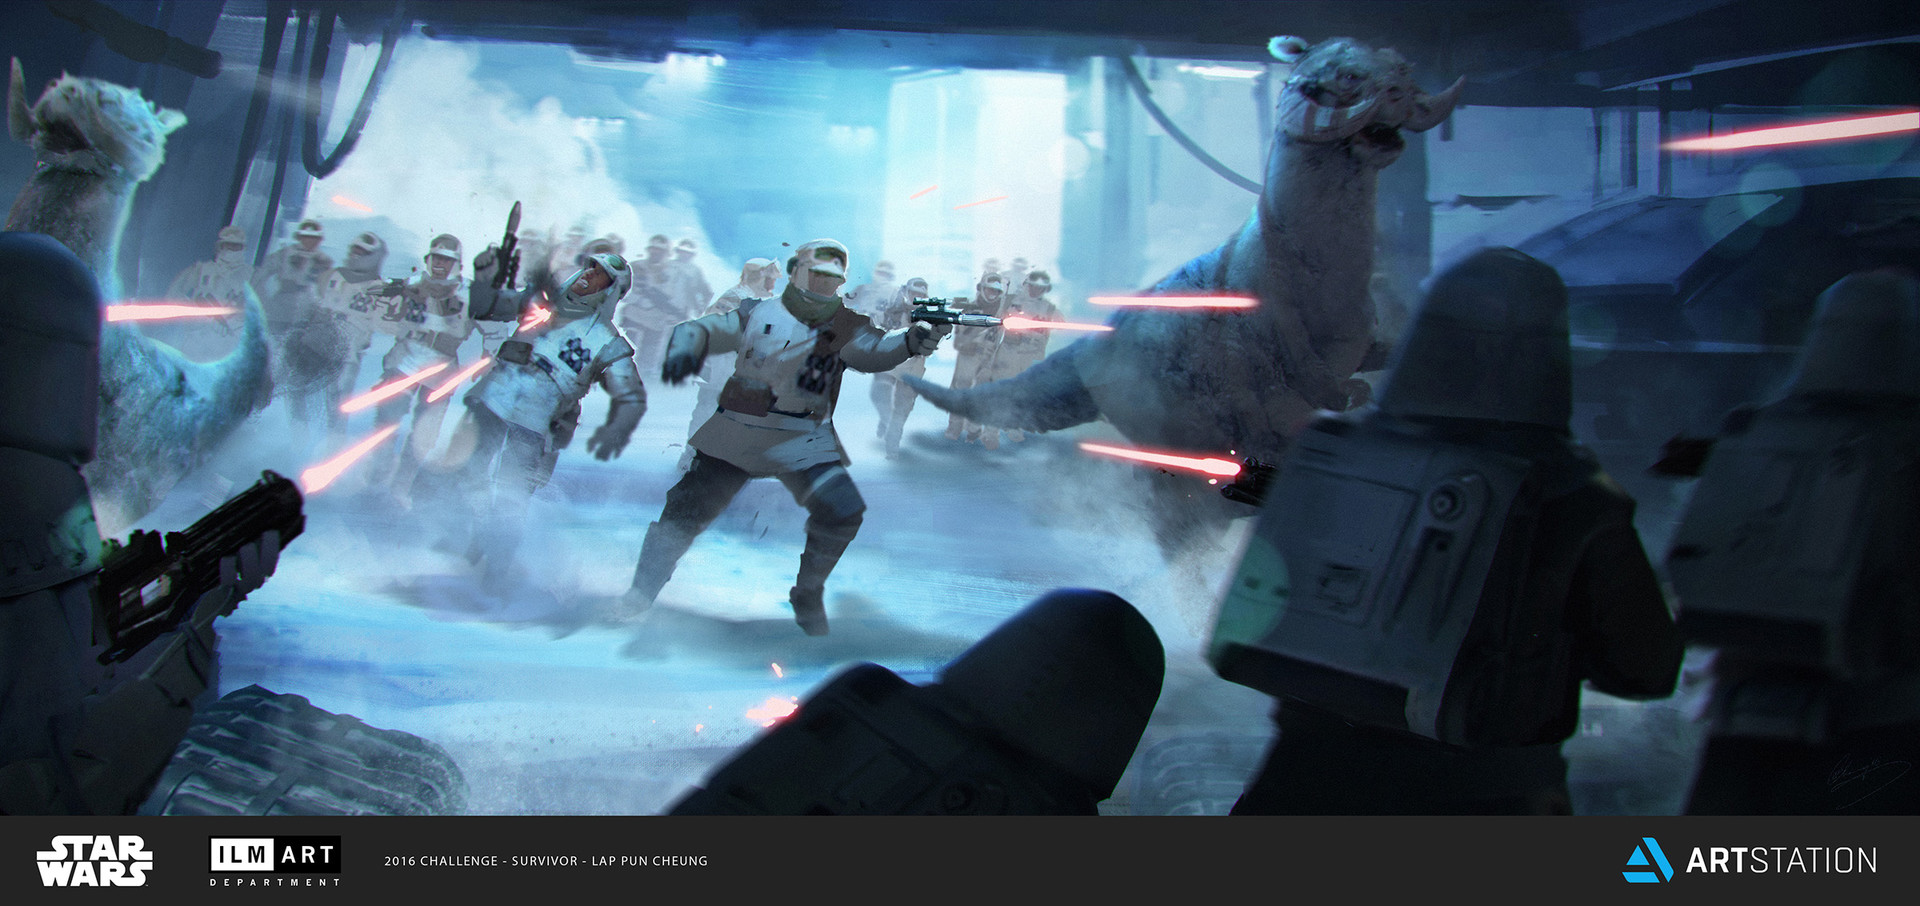 ILM Art Department Challenge - The Job - Part 1 - Keyframe 1